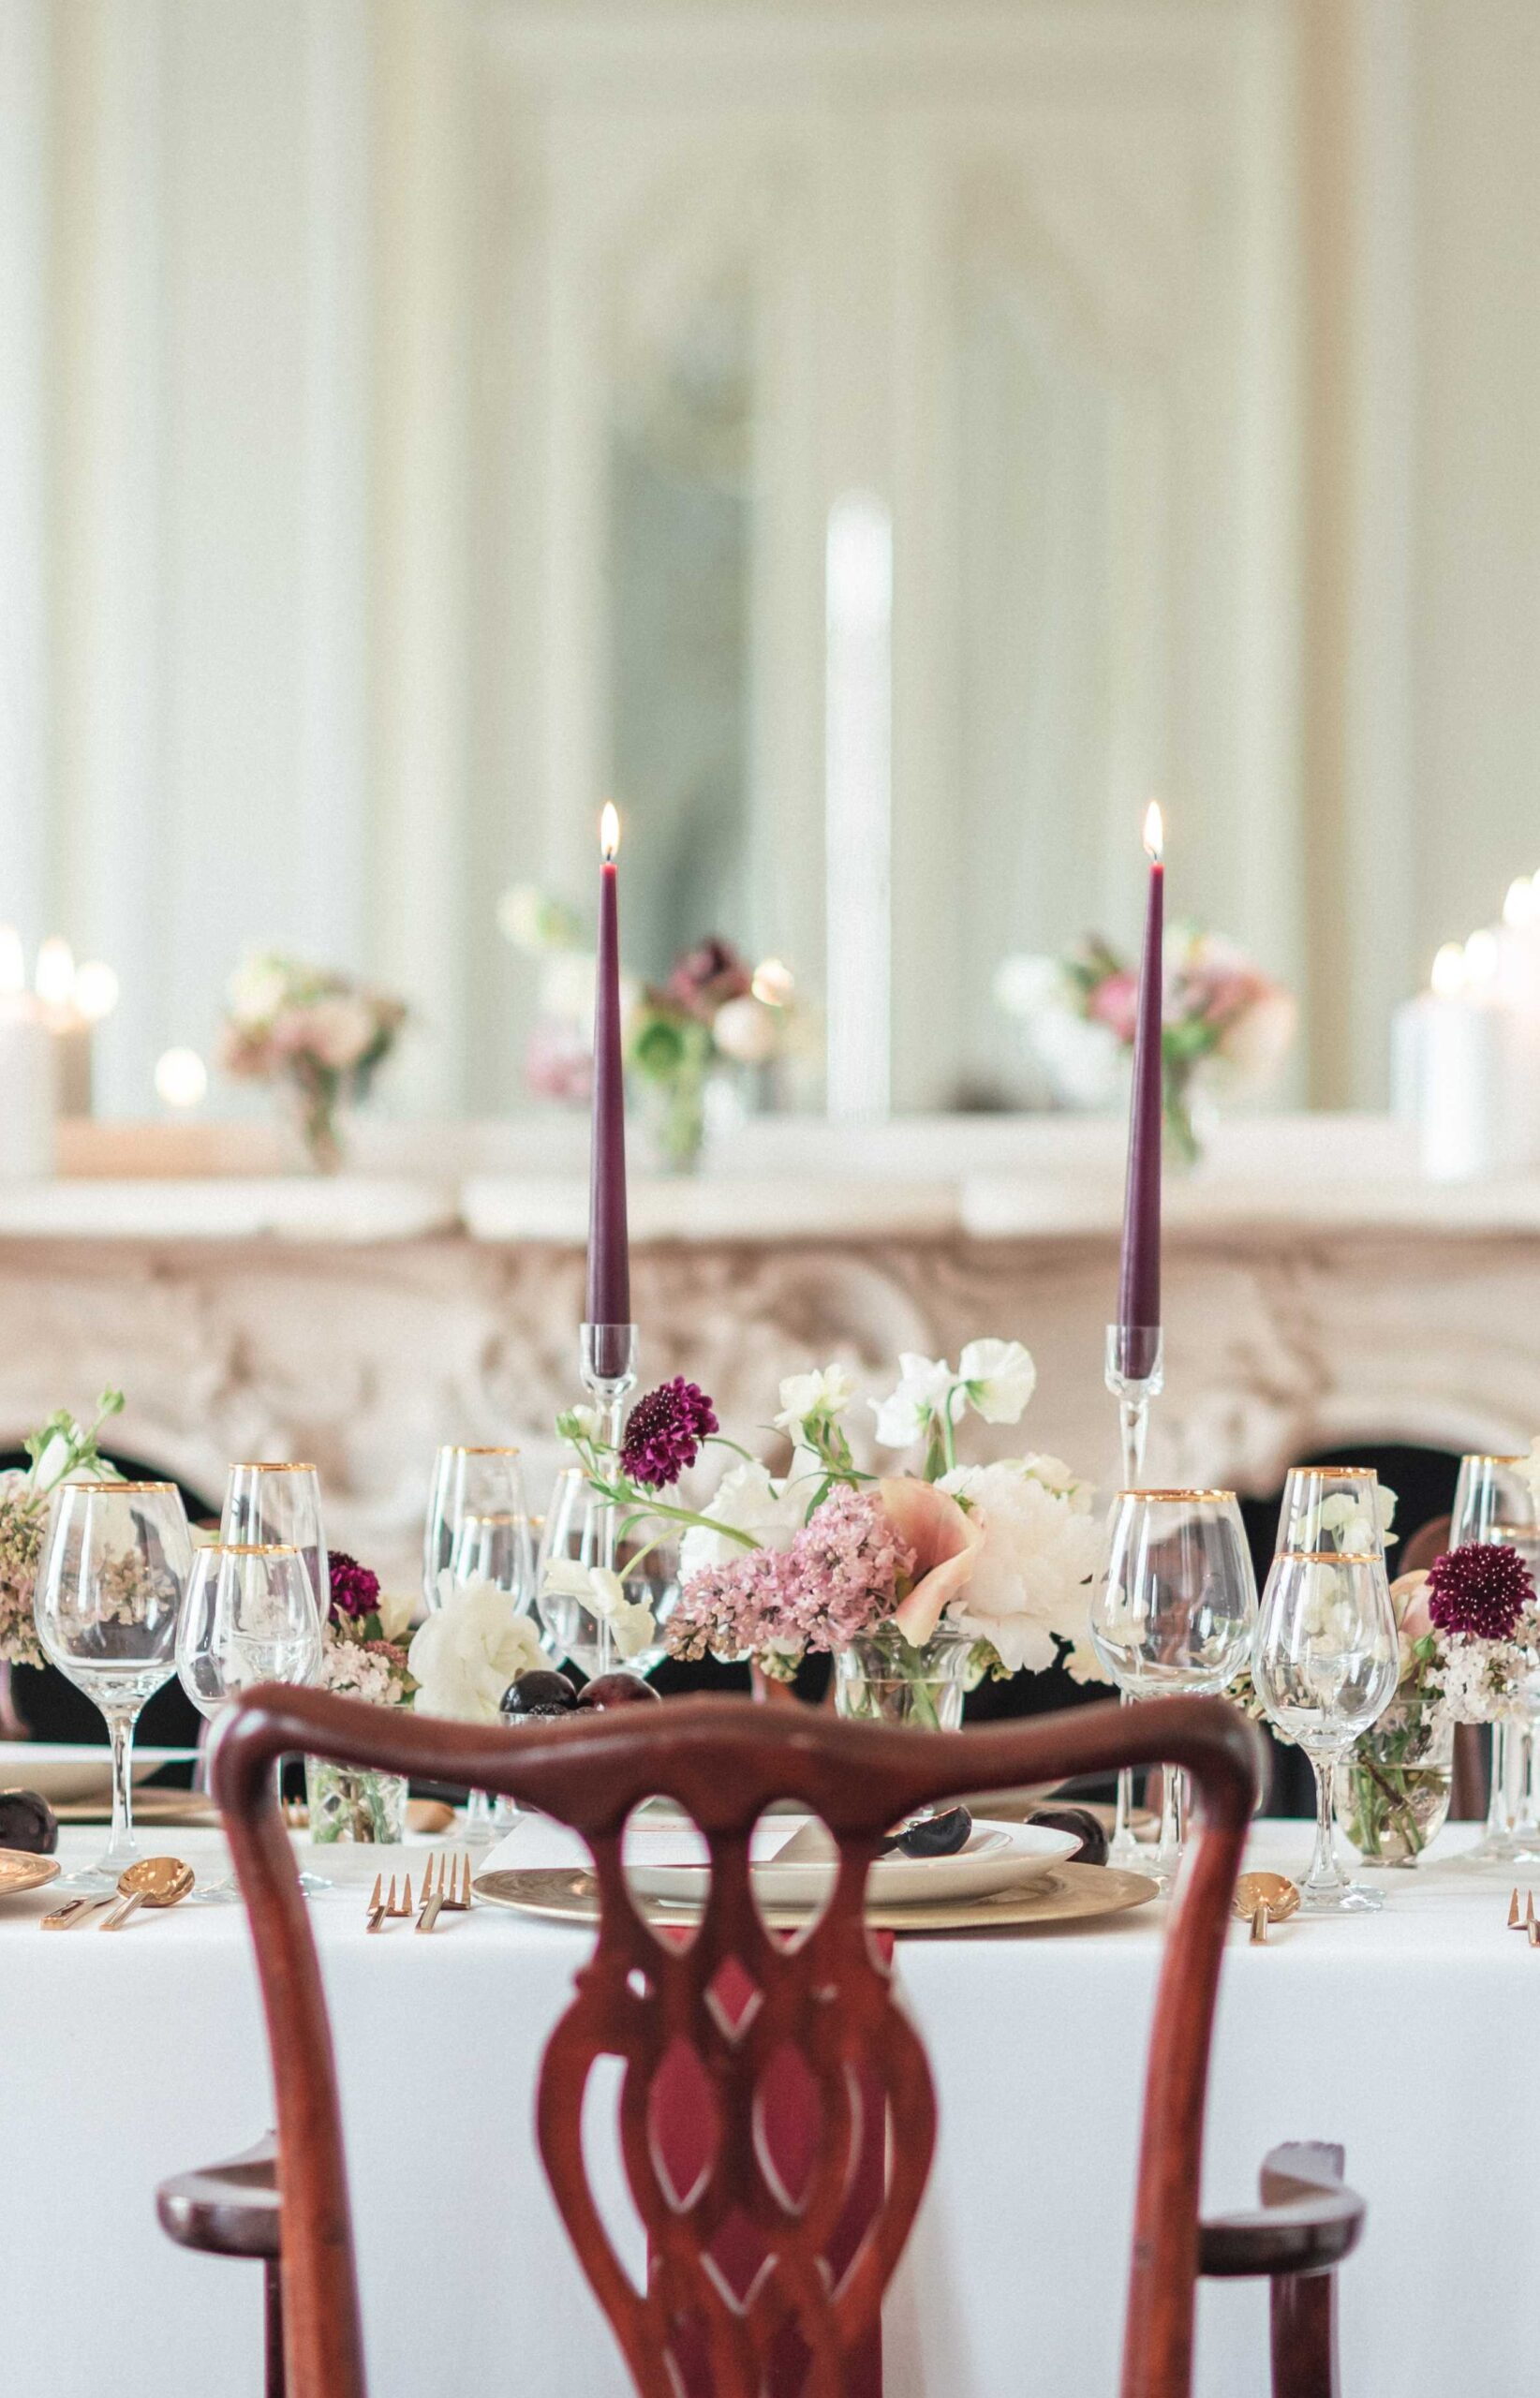 Stunning tablescape designed by Amie Jackson Weddings & Events